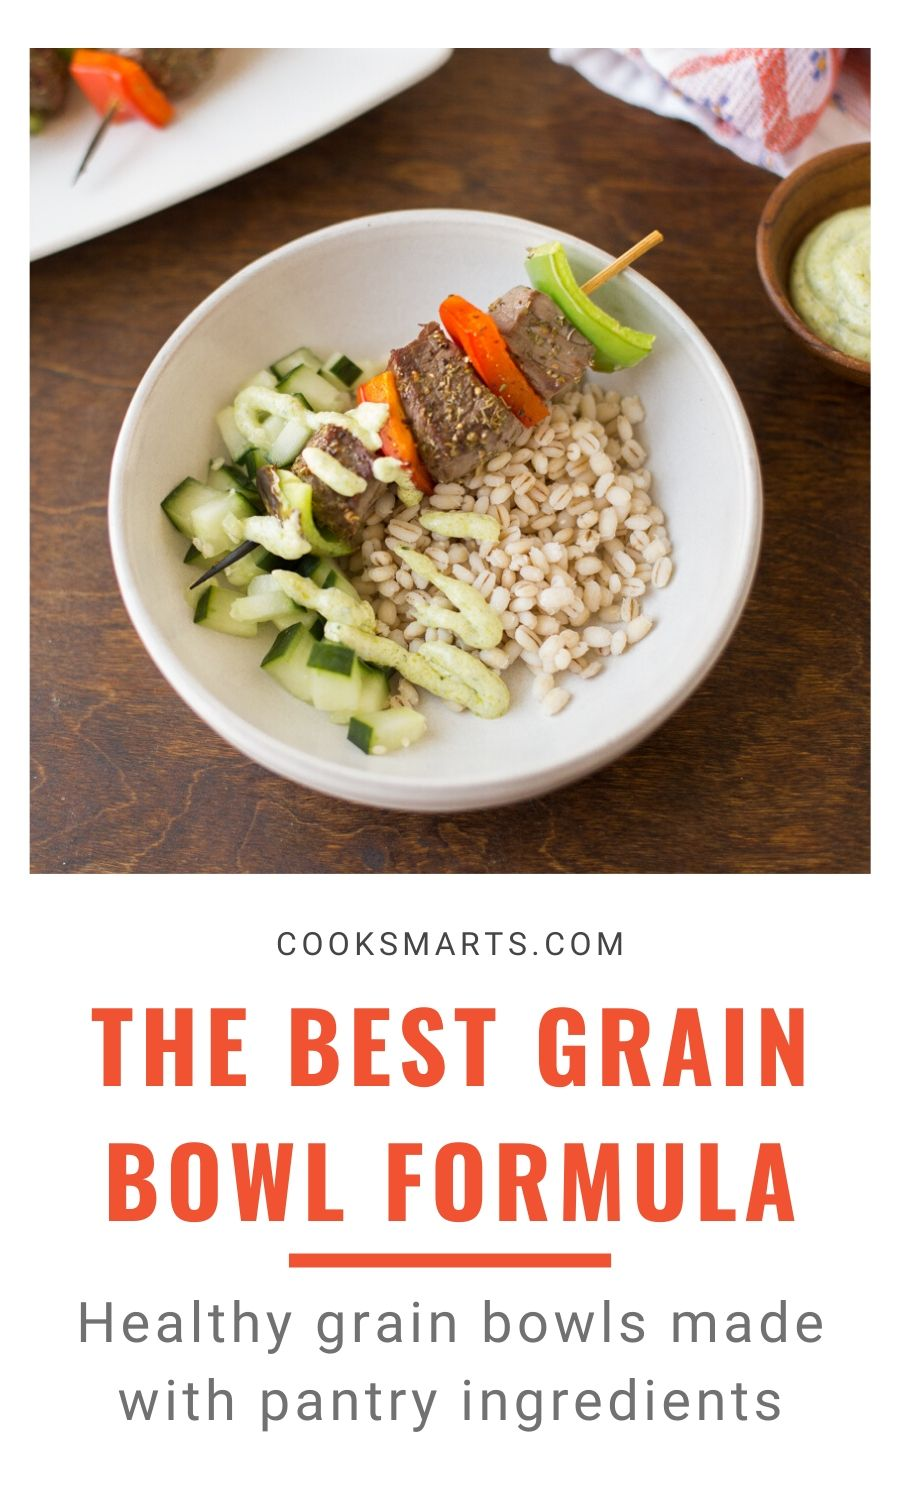 How to Make Grain Bowls | Cook Smarts